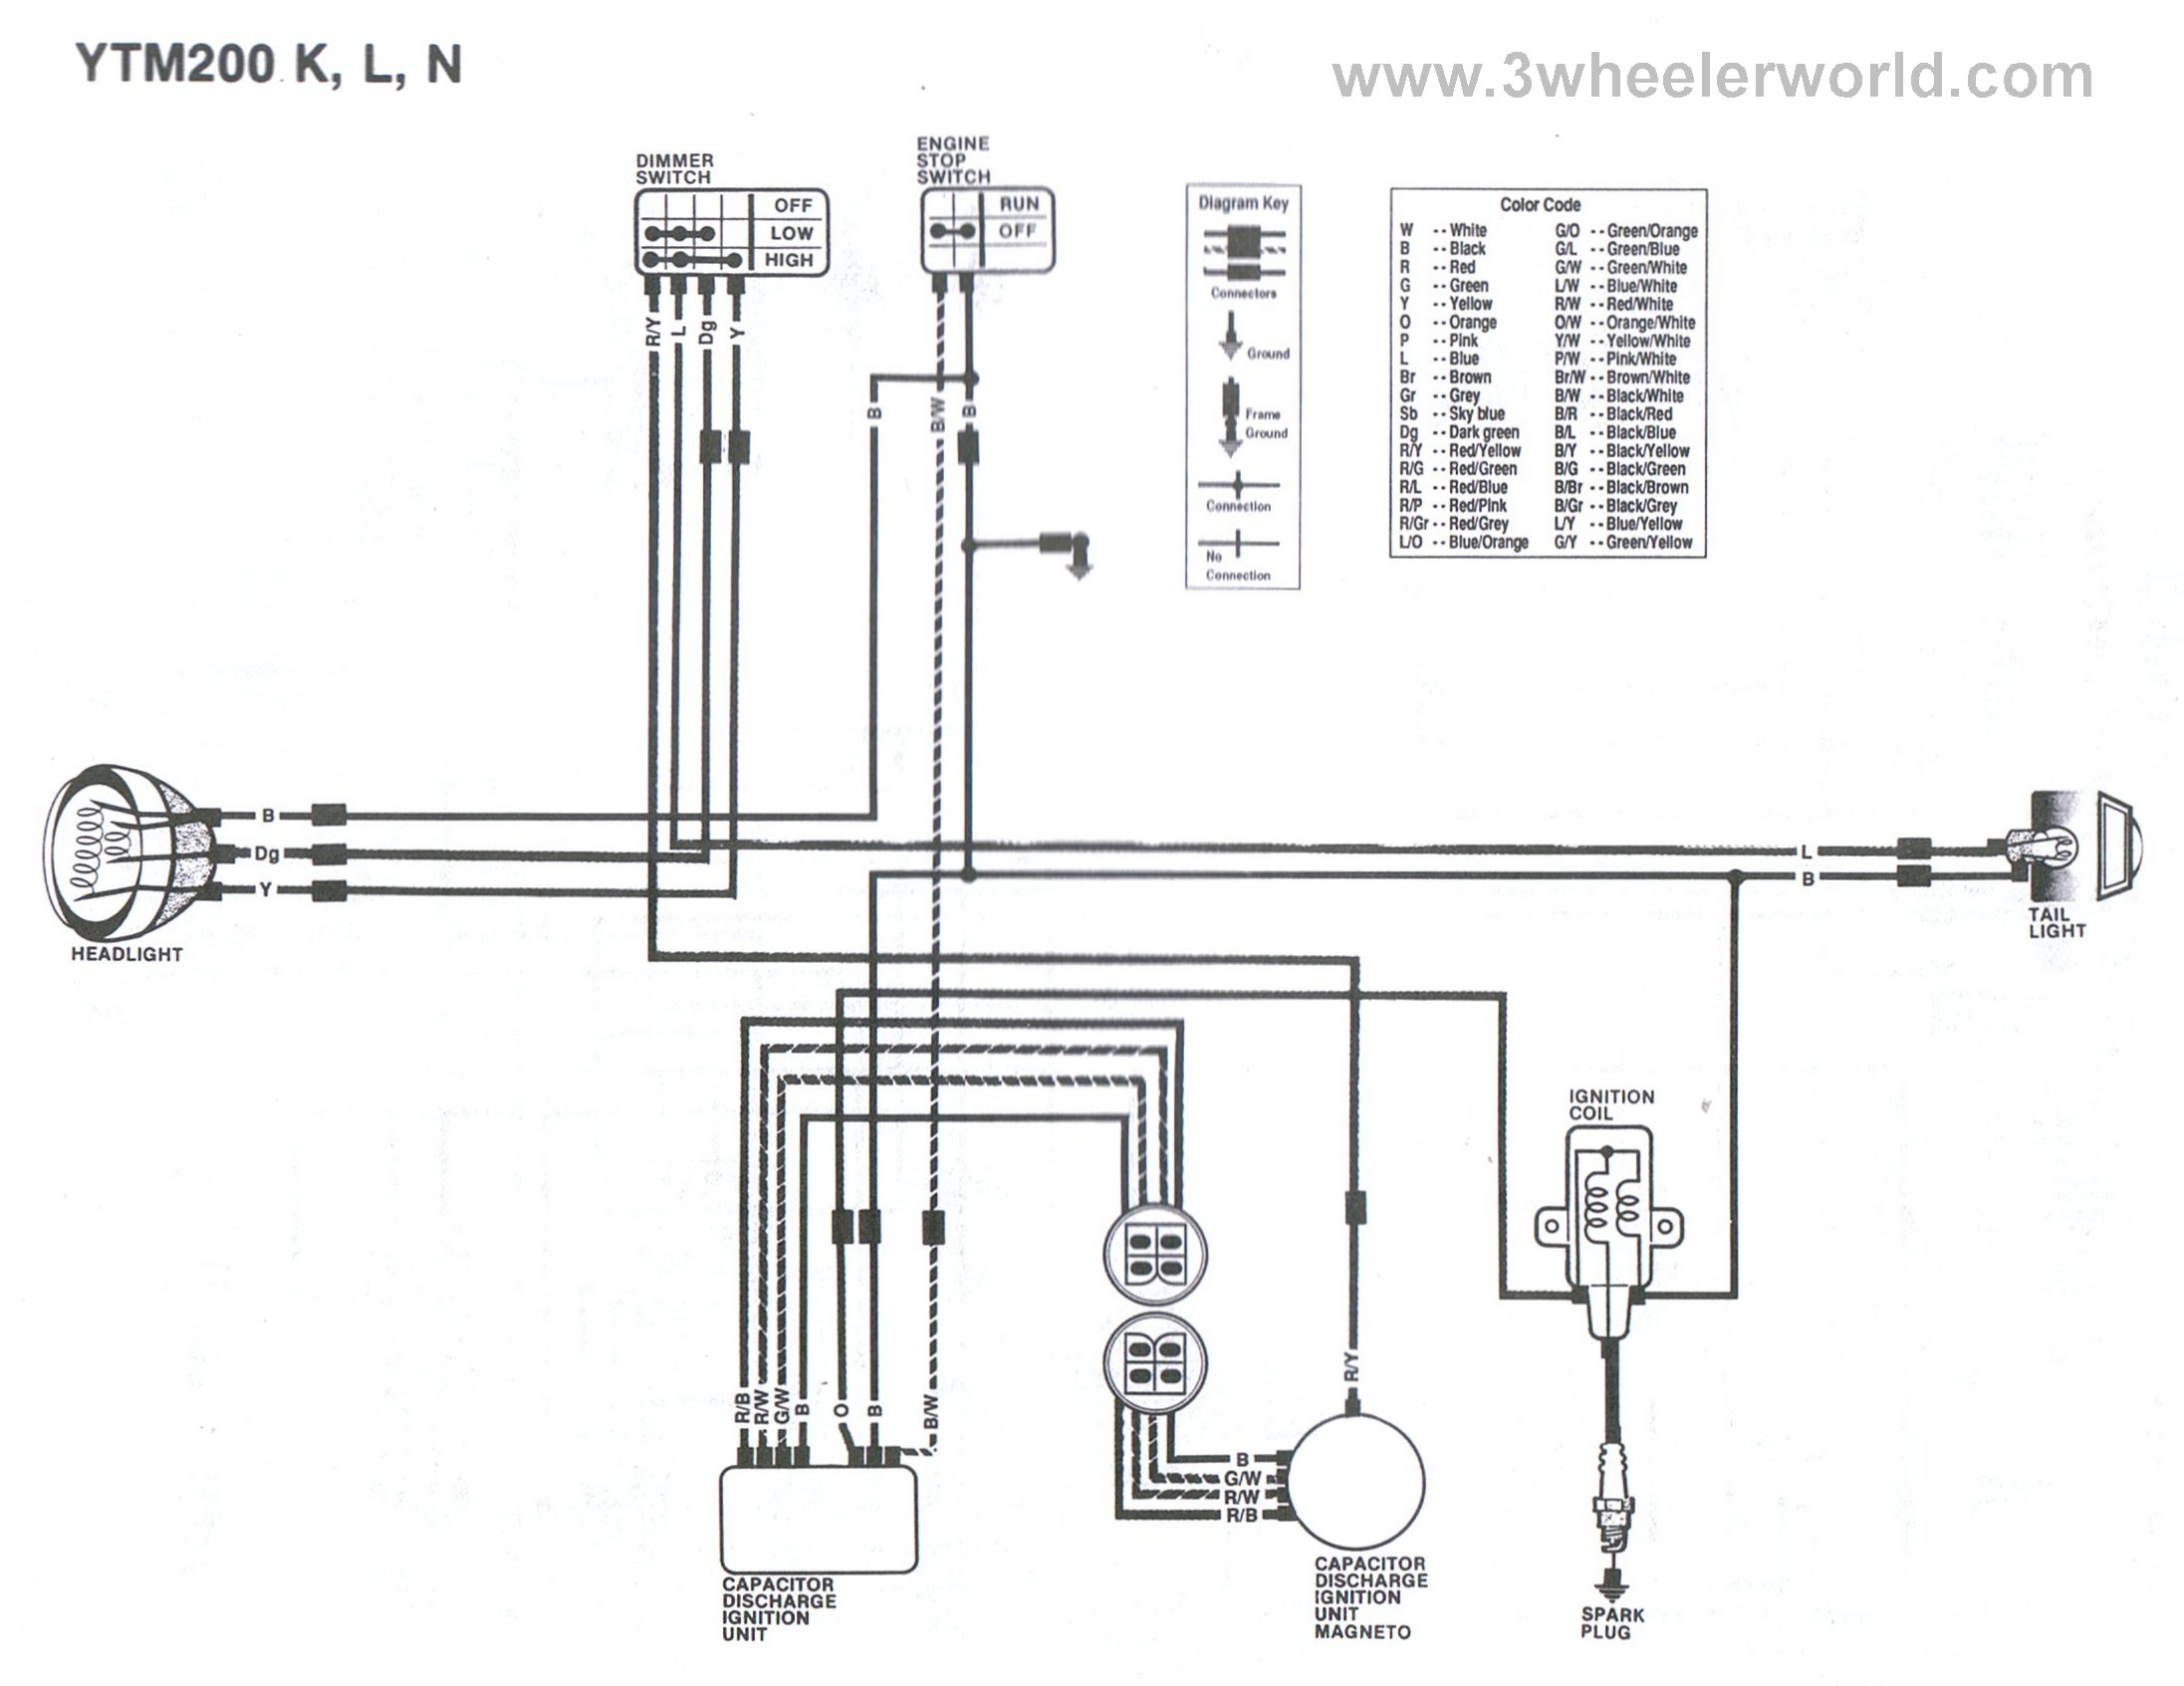 YTM200KLN yamaha blaster cdi wiring diagram the wiring diagram Yamaha Outboard Wiring Diagram at bakdesigns.co